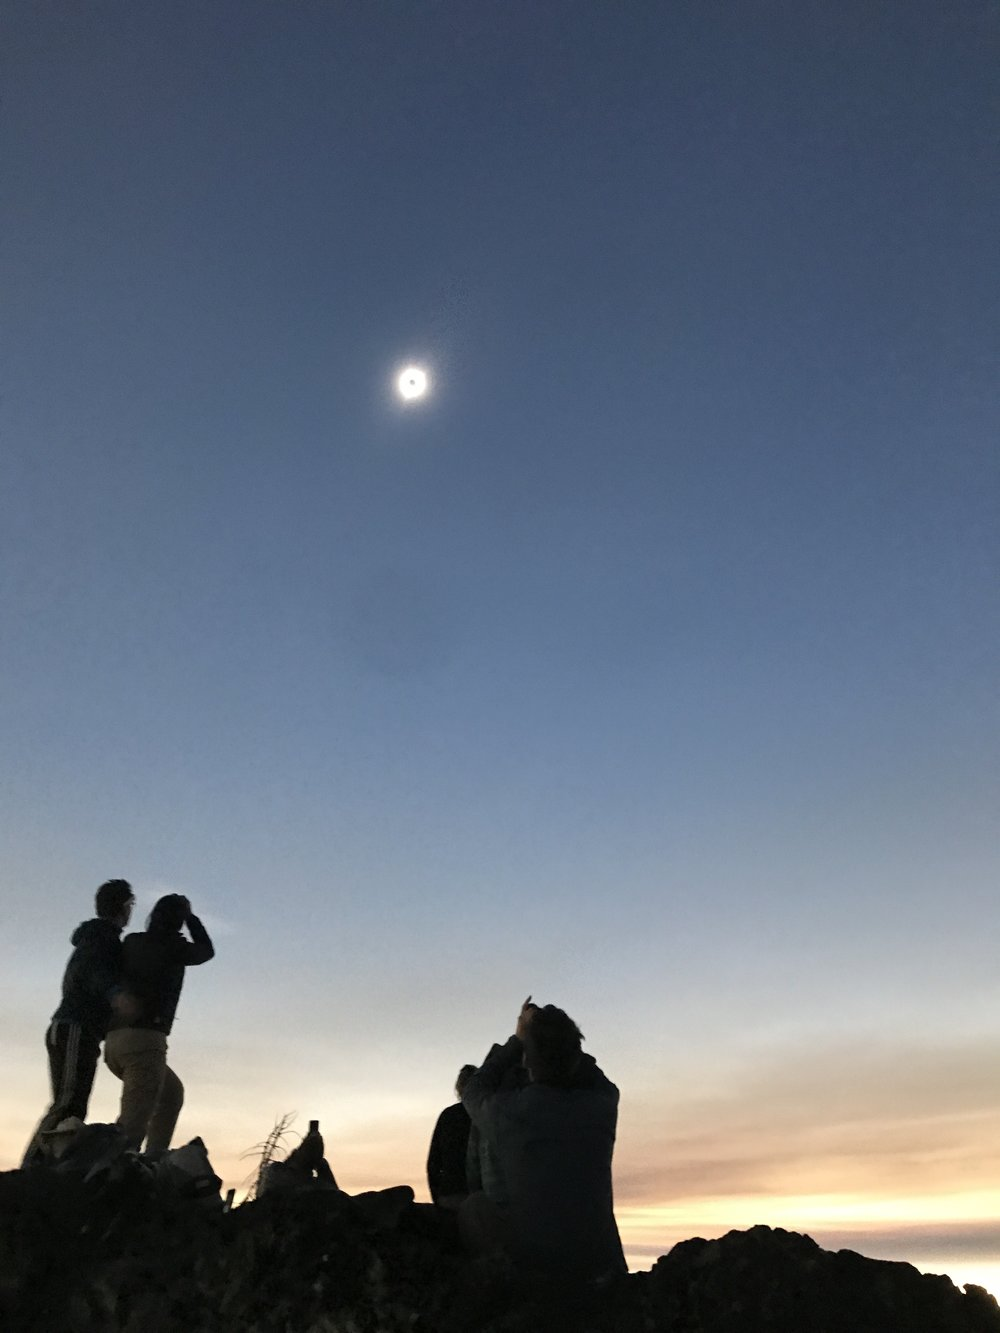 during totality - Above High Lake, Oregon